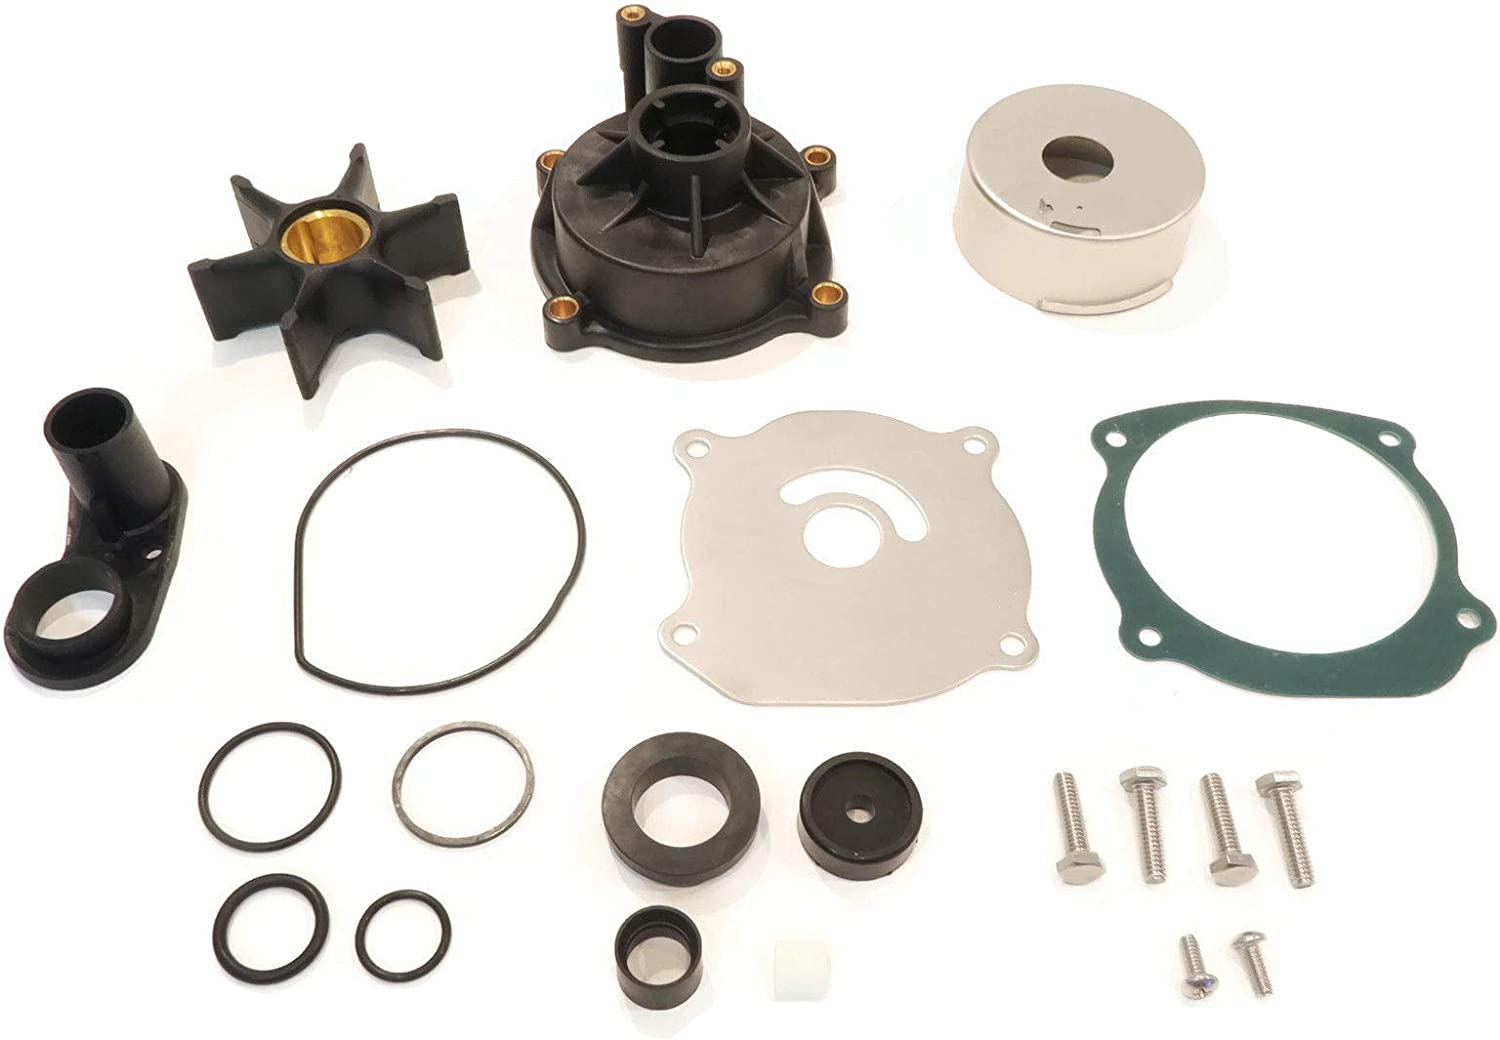 The ROP Shop | Water Pump Rebuild Kit for 1986 Evinrude 100HP, E100WMLCDR, 110HP, E110TLCDC